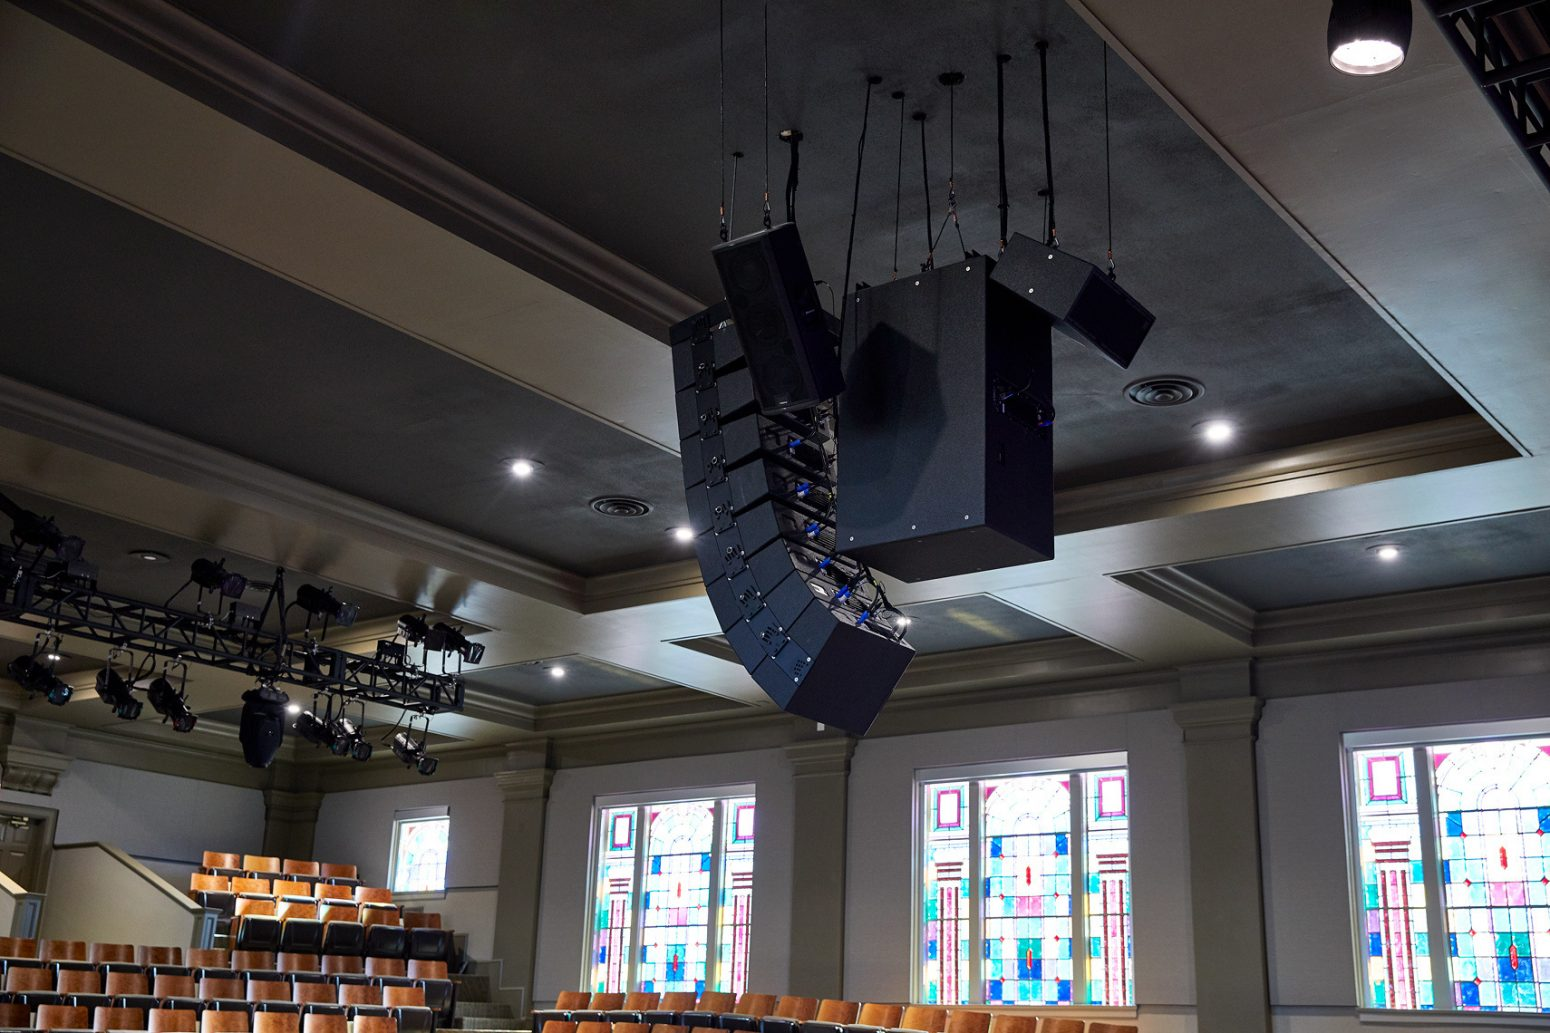 Audio designs and sound design company Paragon 360 created this ceiling sound system.